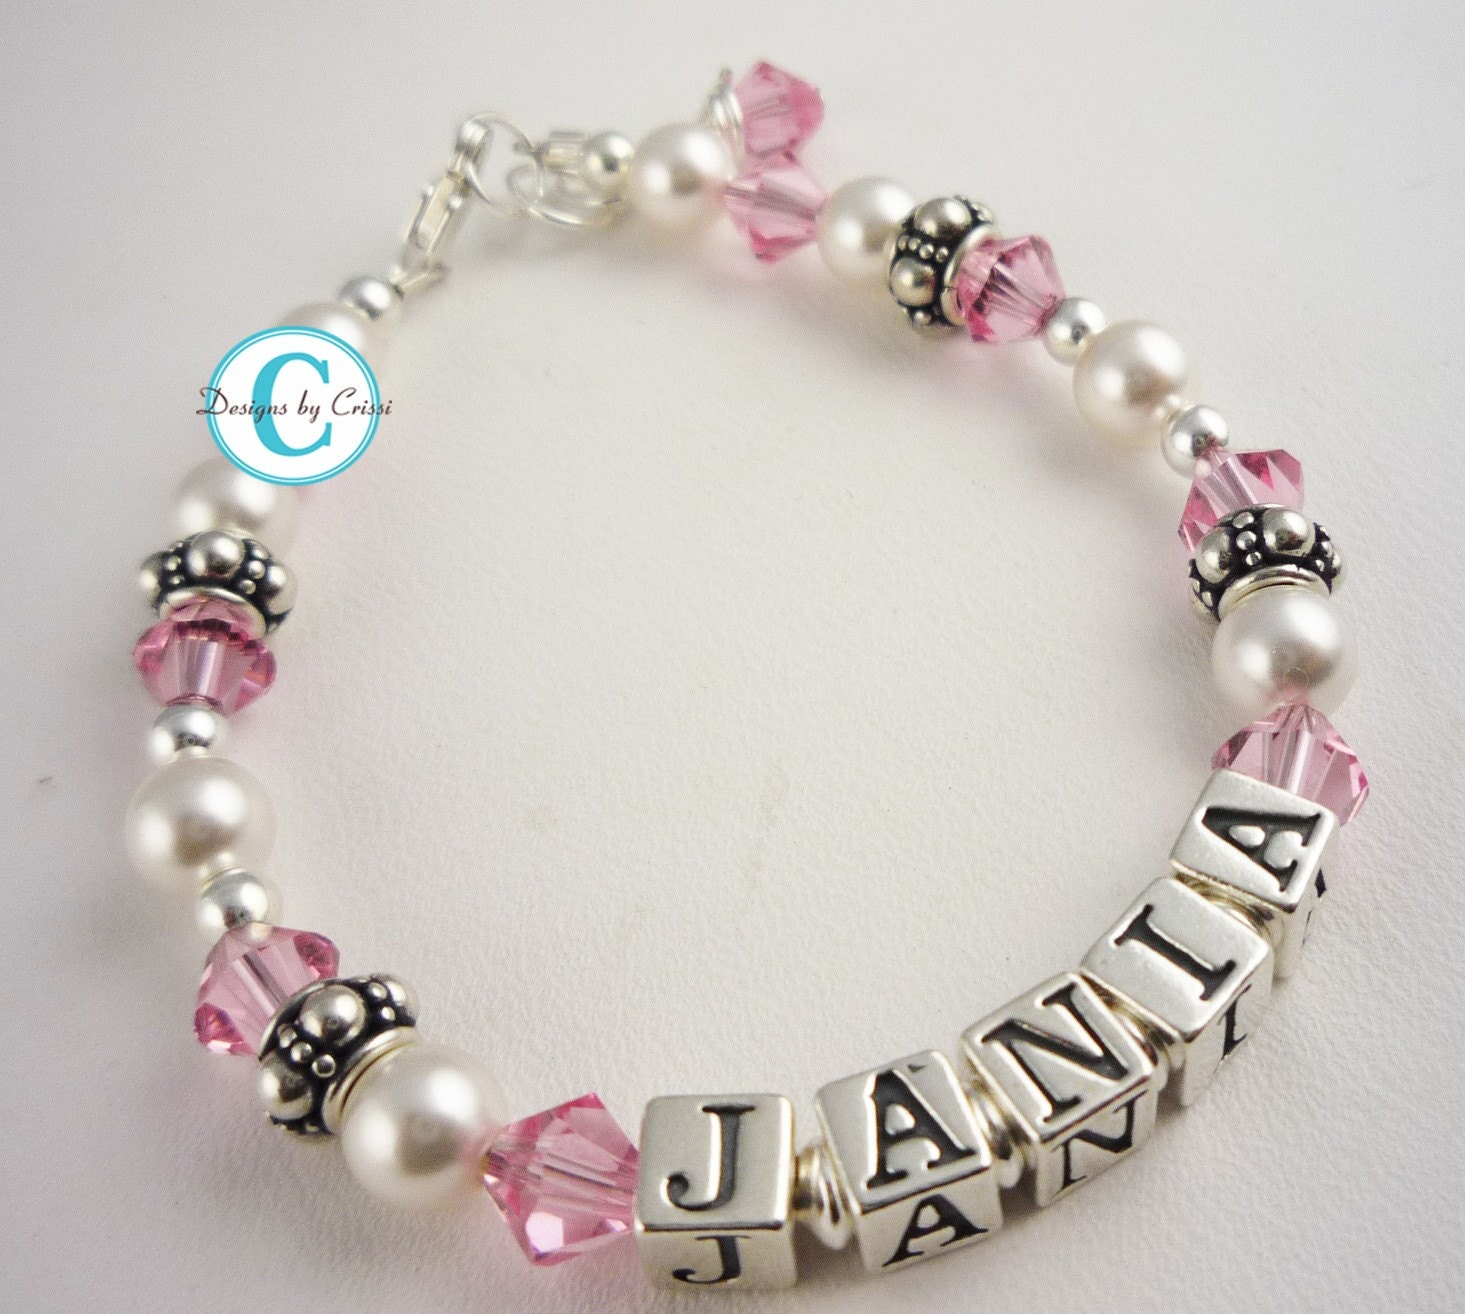 Beautiful jewelry for babies and children in silver and gold for girls and boys of all ages. Infant and baby bracelets, babies pearl bracelets, little girl bracelets, children's name bracelets, lockets for girls, screw back earrings, huggie hoop earrings, childrens jewelry boxes, christening bracelets and christening pins, and more. Free Shipping.